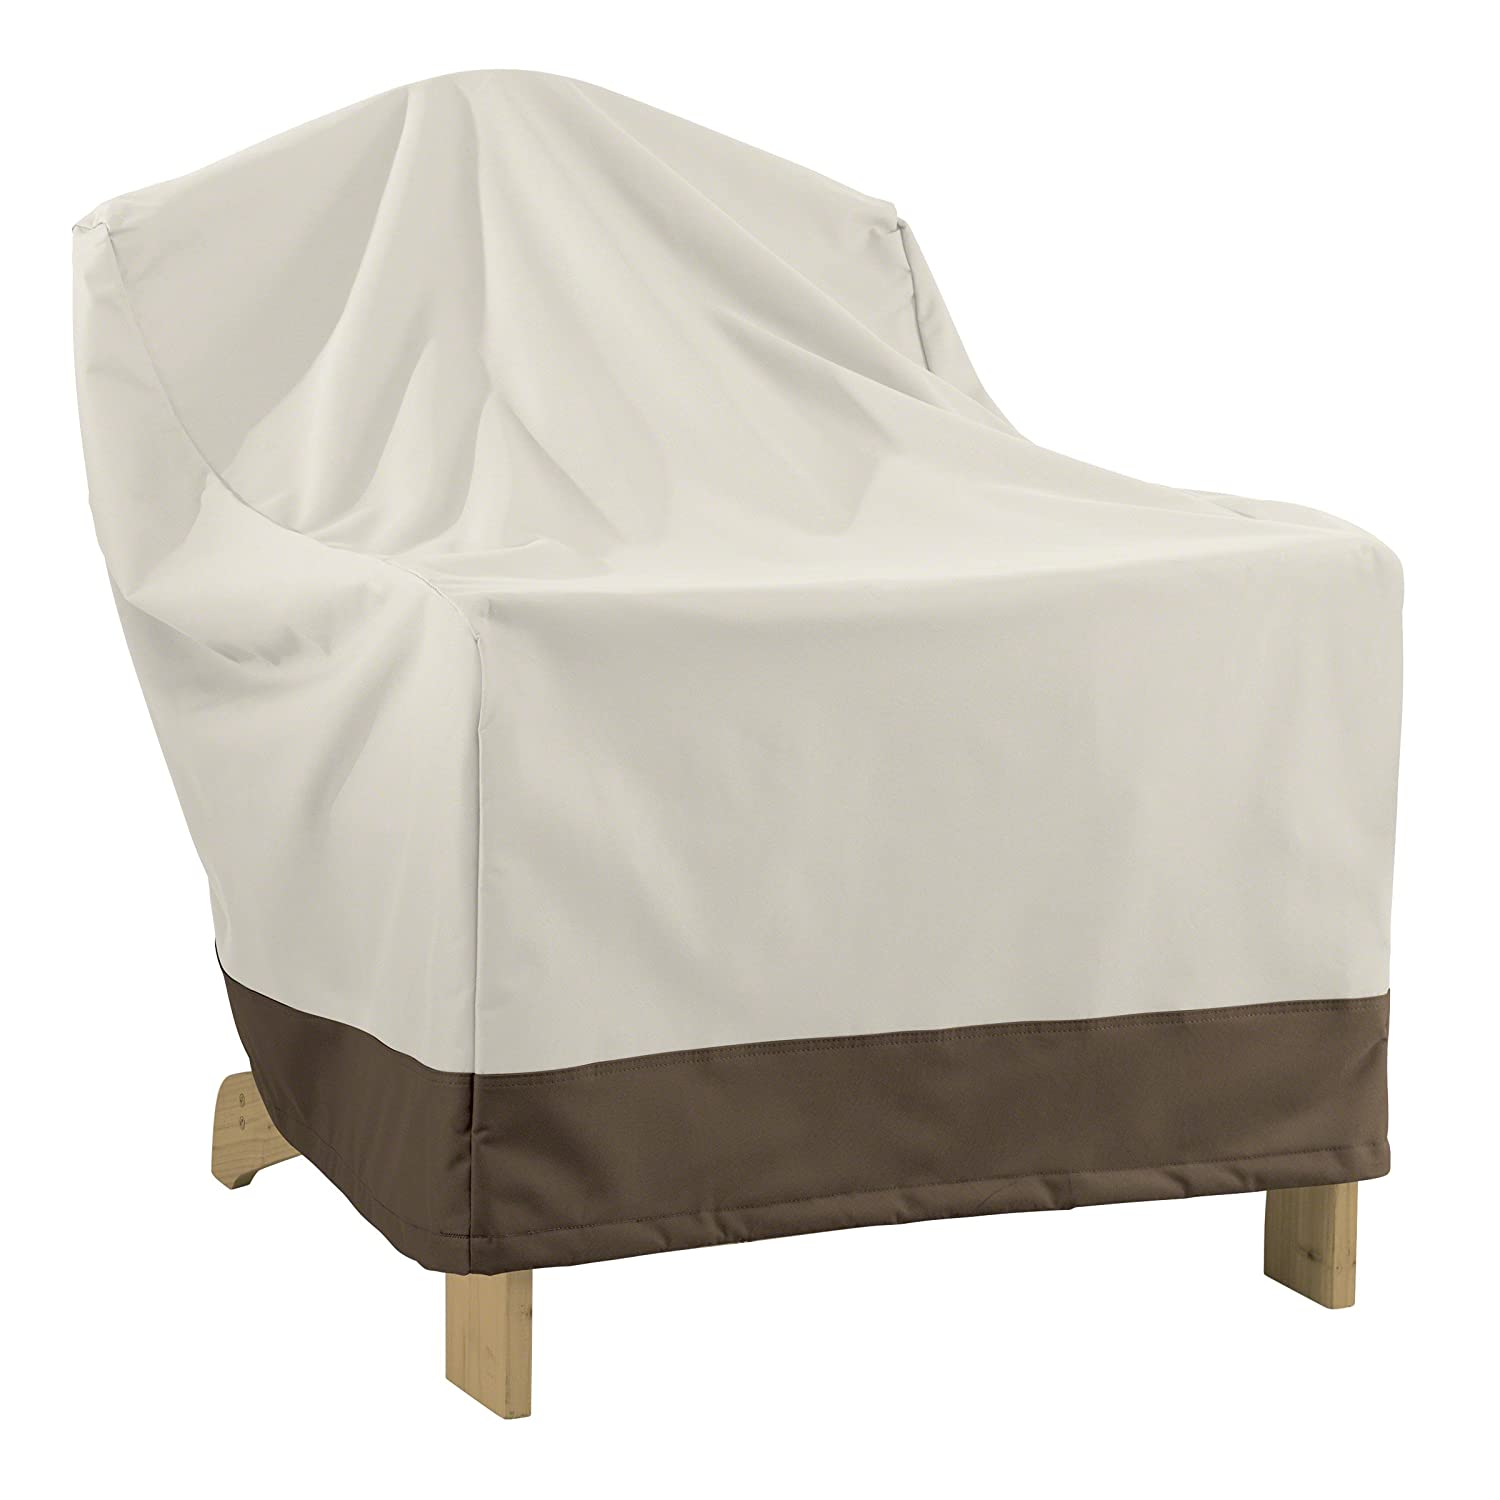 AmazonBasics Adirondack-Chair Patio Cover